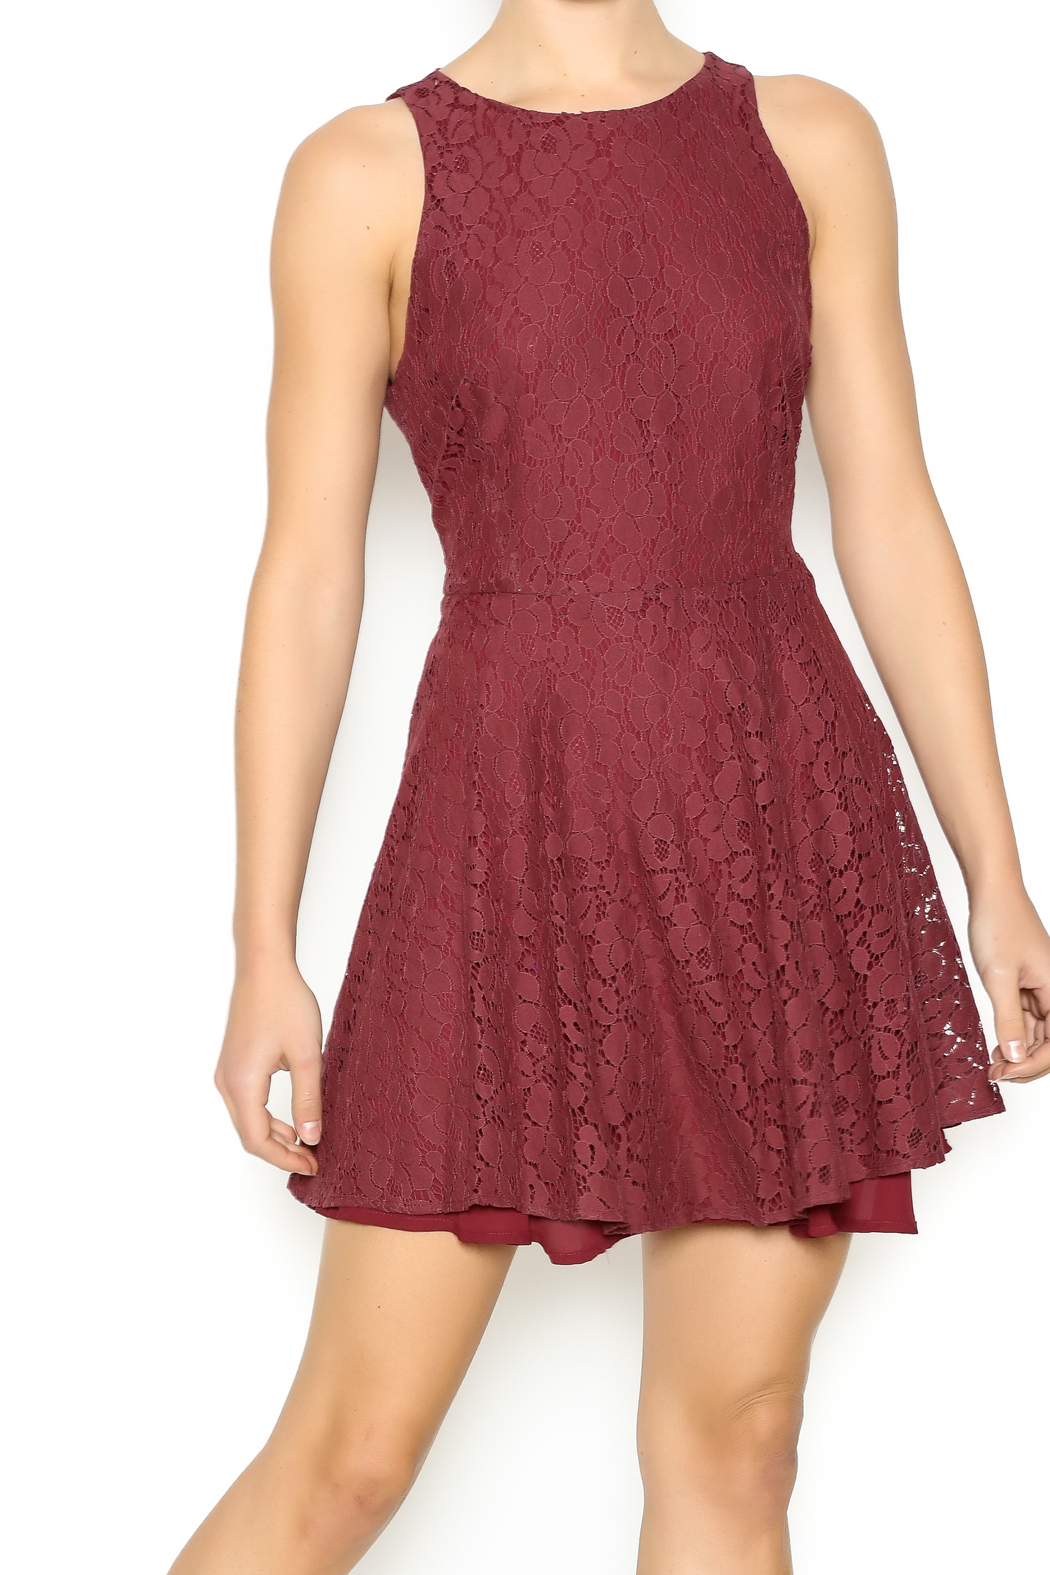 1795b6c99c Lucy Love Holly Jean Sangria Dress from Indiana by Unity Boutique ...